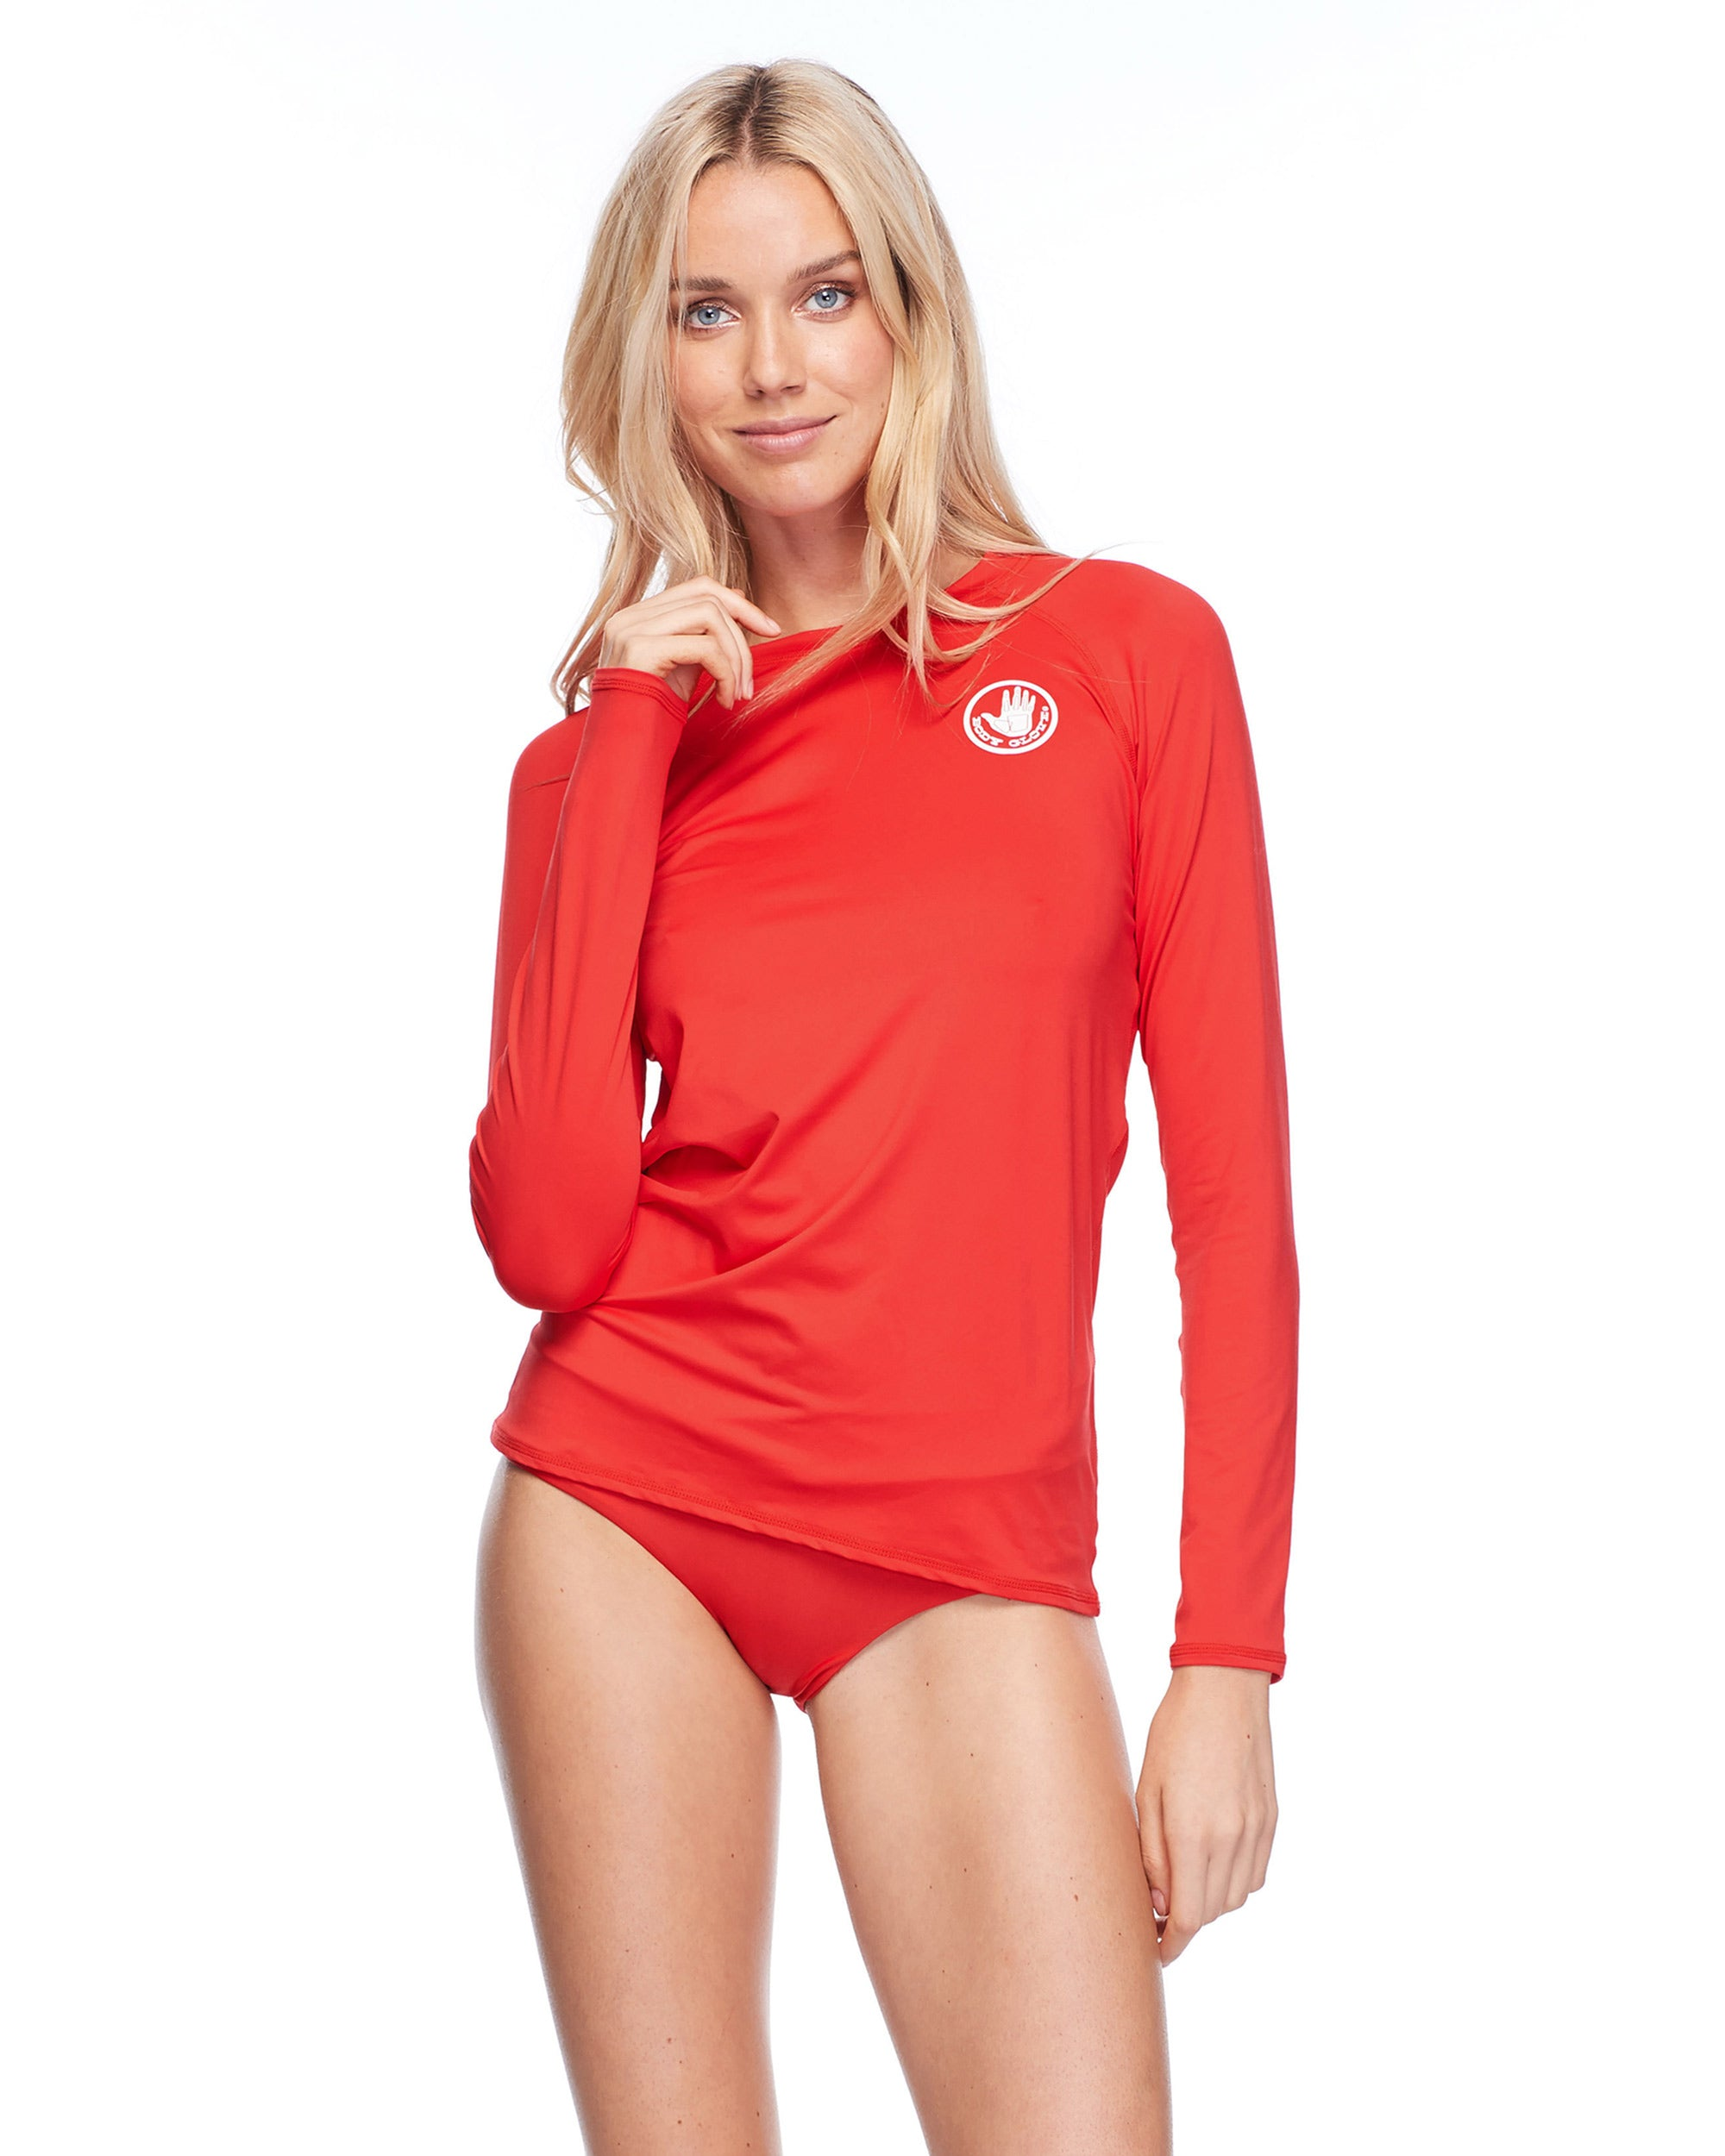 Smoothies Sleek Rash Guard - True